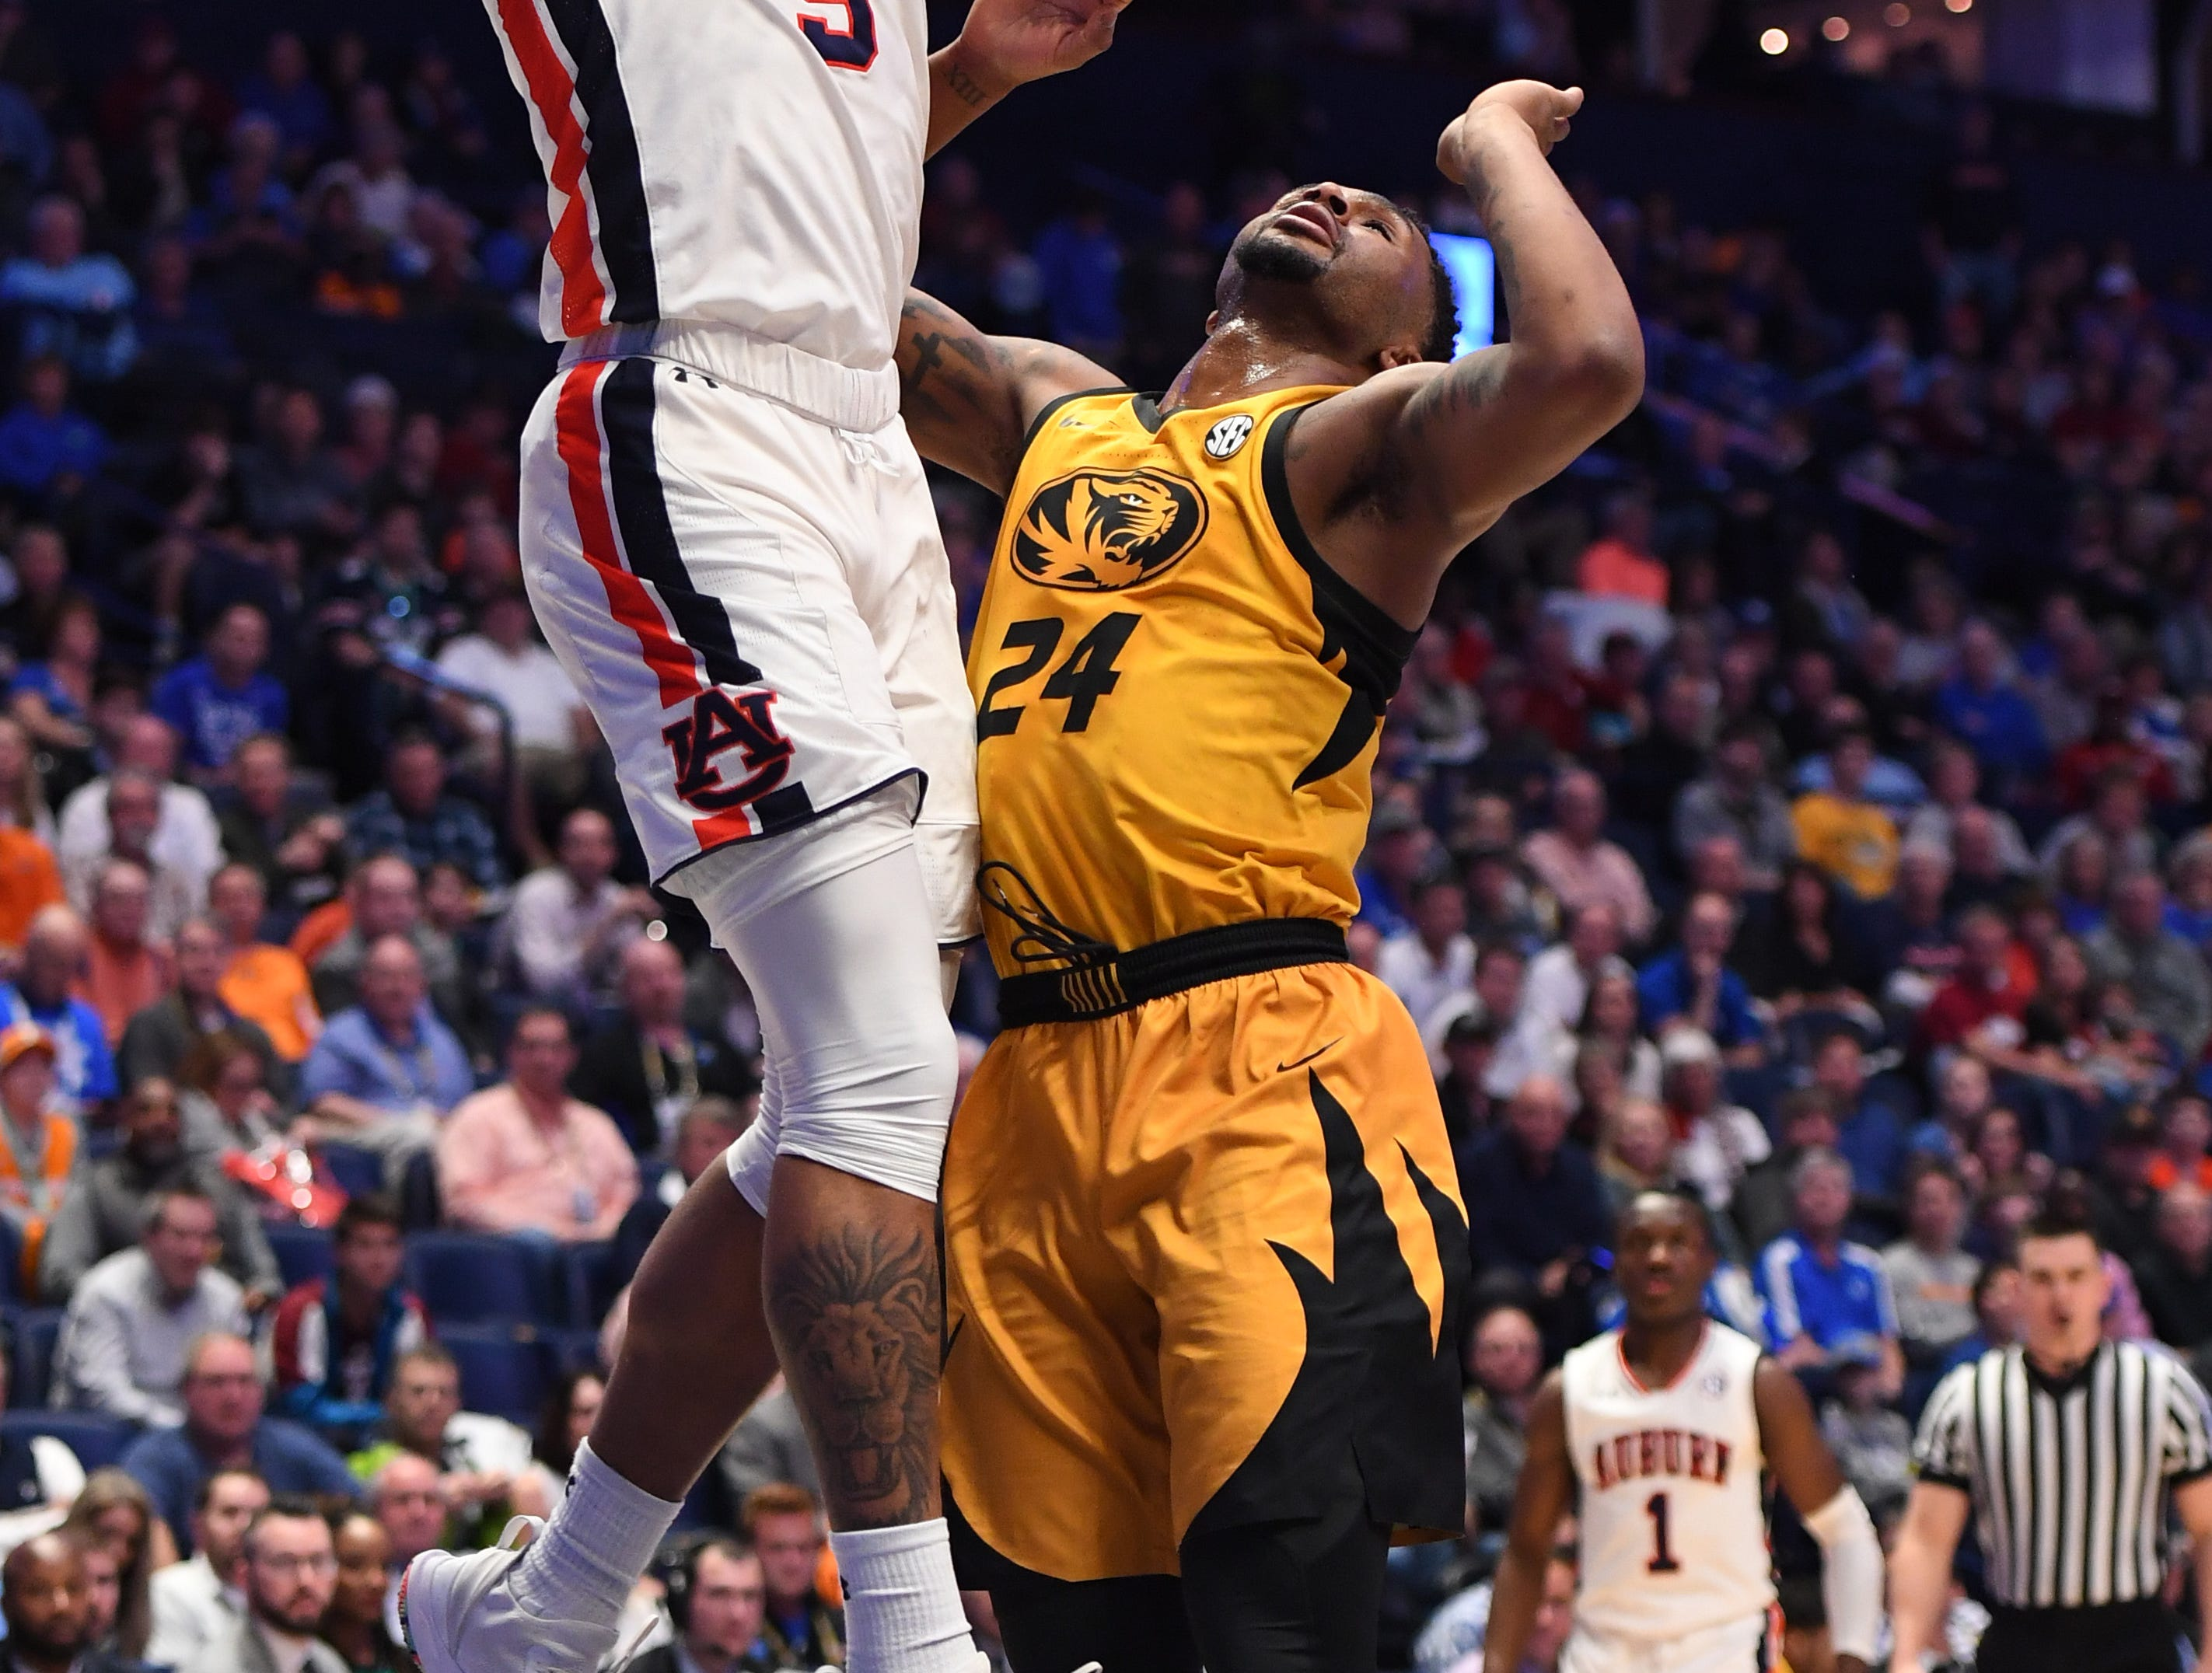 Mar 14, 2019; Nashville, TN, USA; Auburn Tigers forward Chuma Okeke (5) scores a basket against Missouri Tigers forward Kevin Puryear (24) during the first half of the SEC conference tournament at Bridgestone Arena. Mandatory Credit: Christopher Hanewinckel-USA TODAY Sports